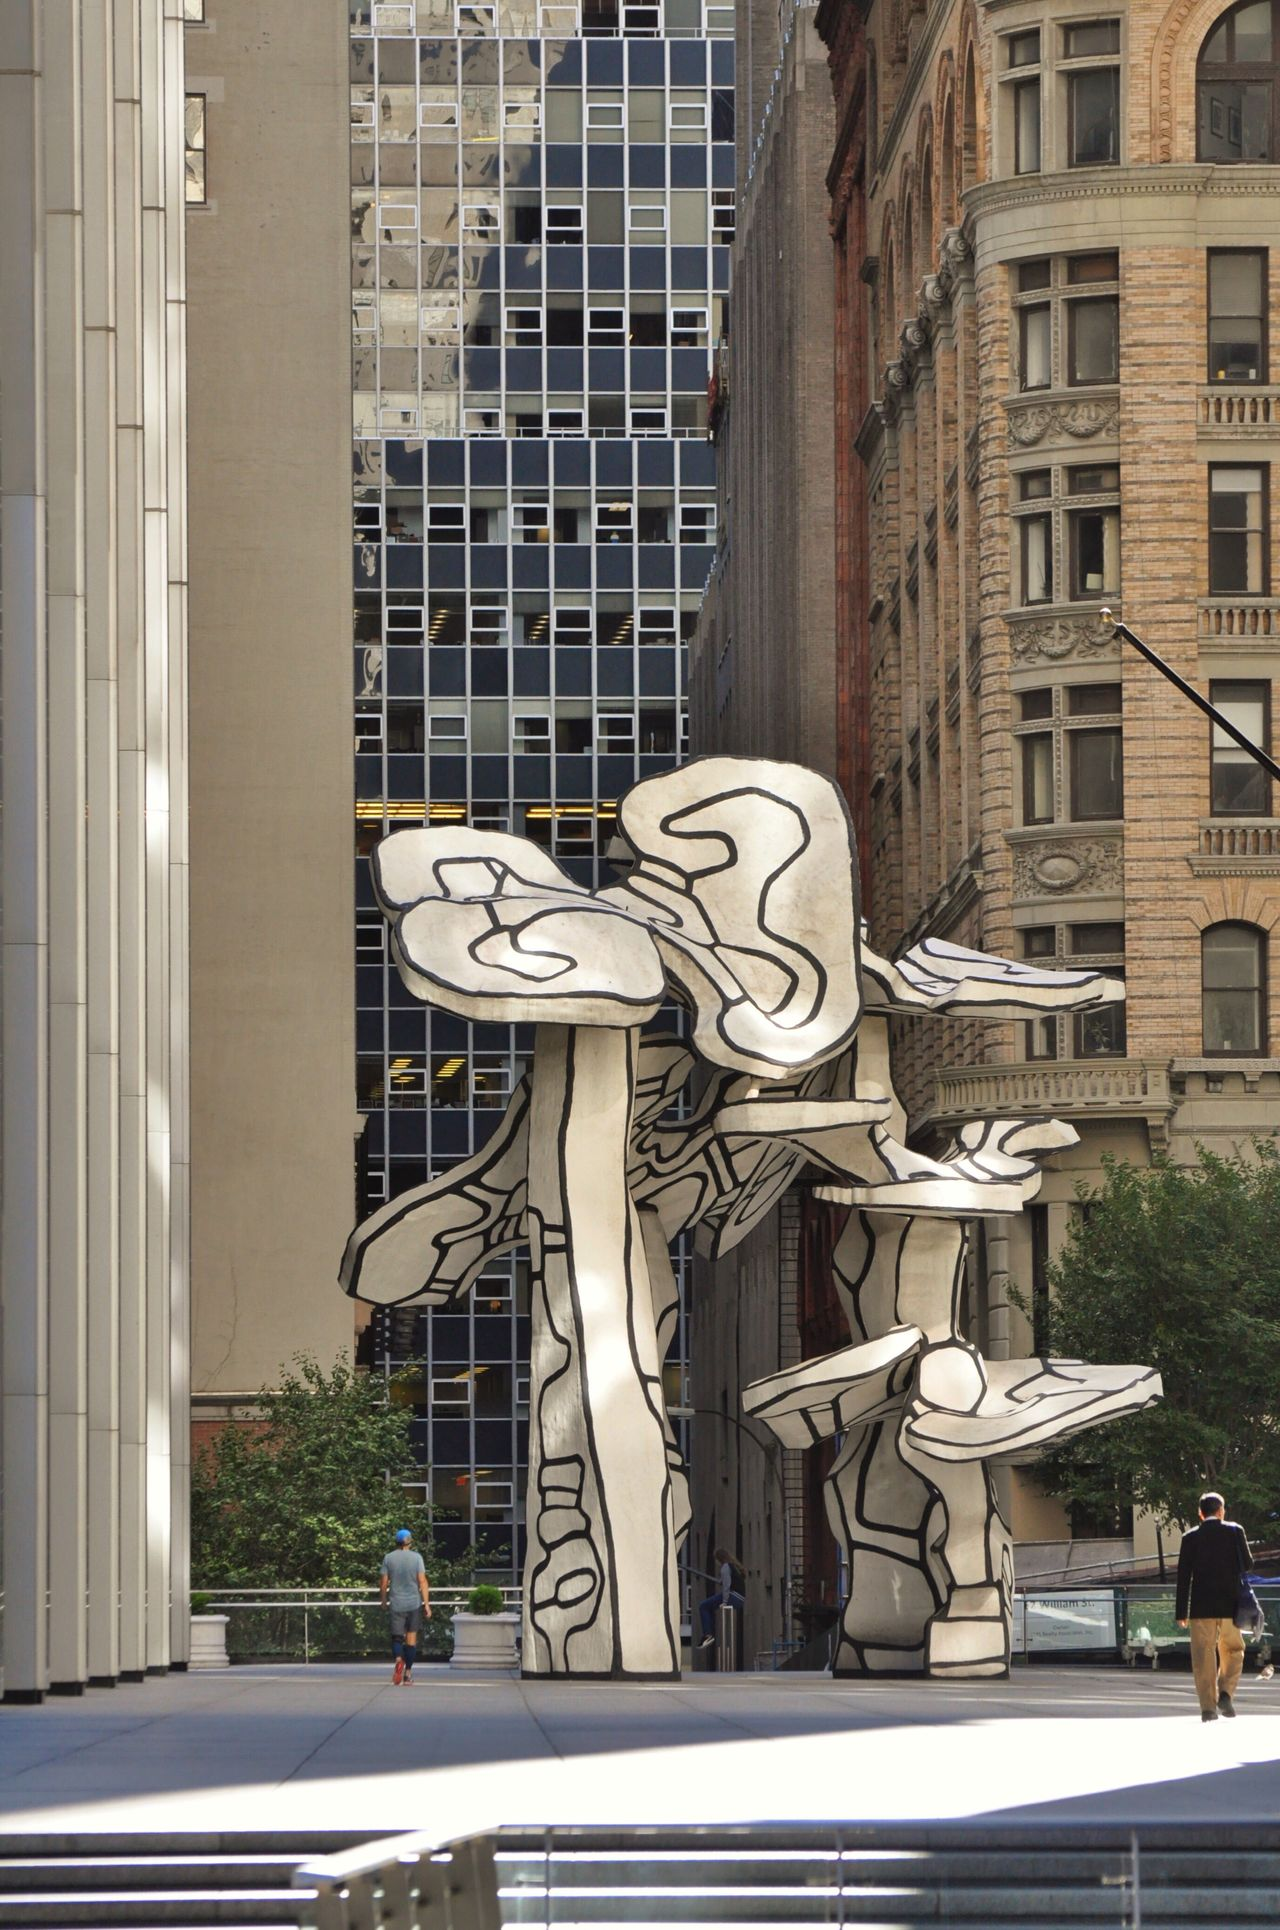 Dubuffet New York New York City Manhattan Downtown Financial District  Art ArtWork Sculpture City Outdoors Urban Geometry